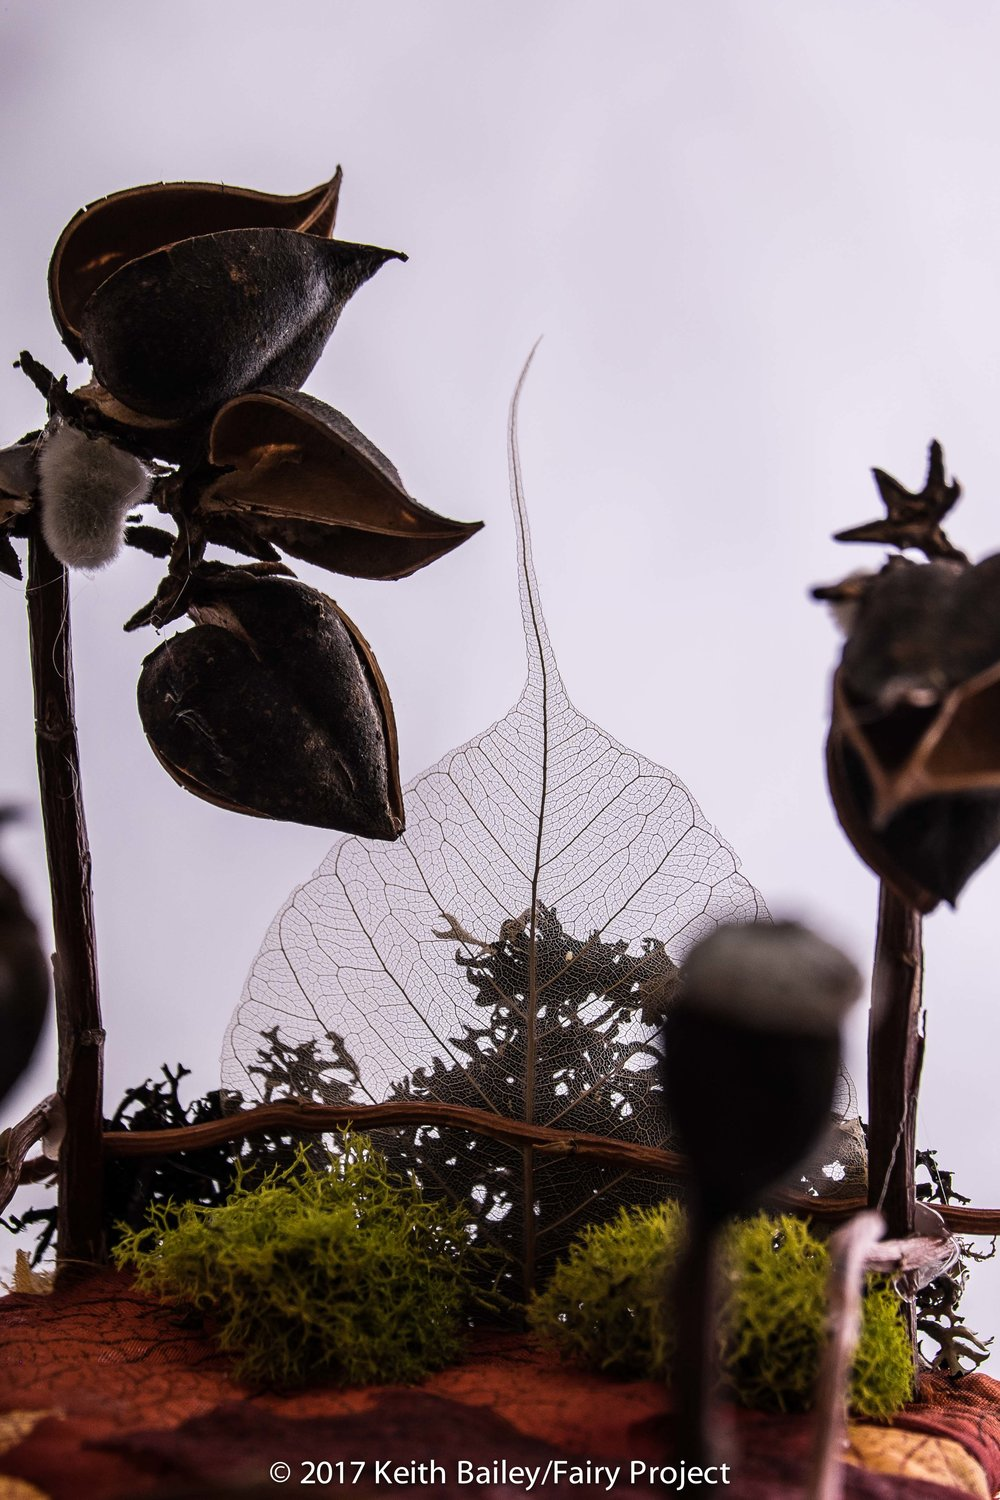 The Fairy Project - Seed Pod